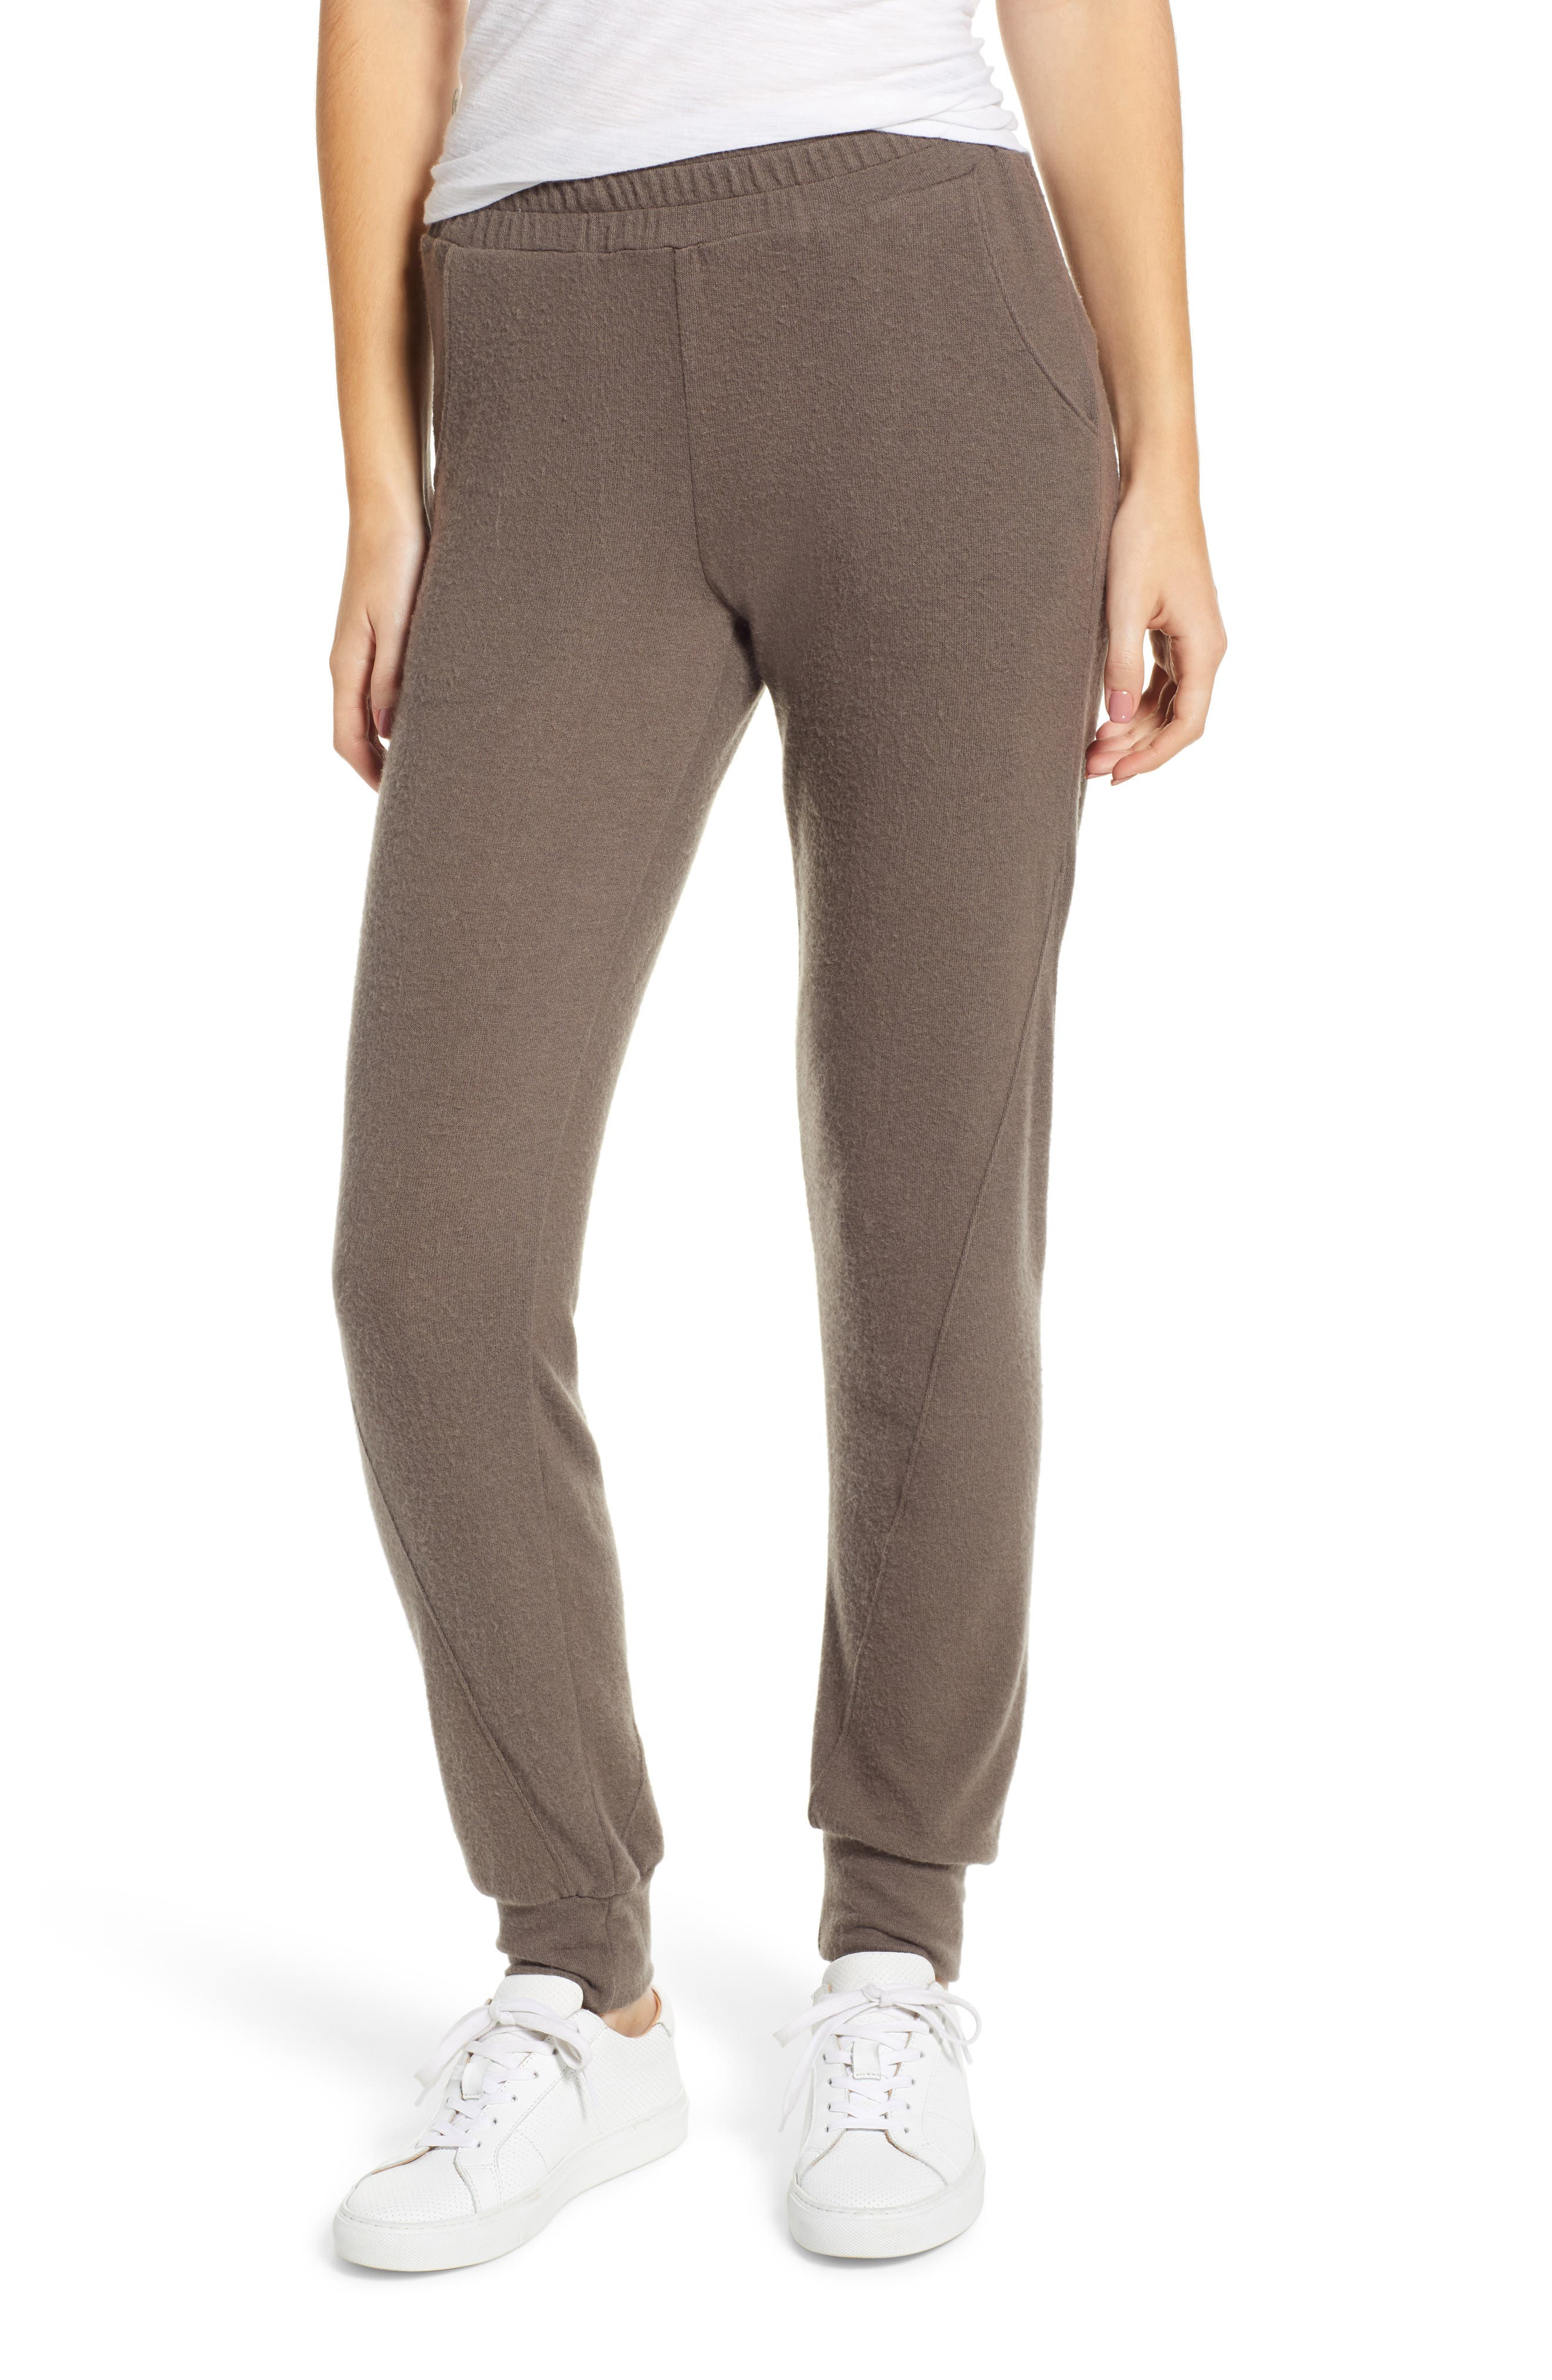 PROJECT SOCIAL T Calhoun Cozy Seamed Sweatpants in Olive